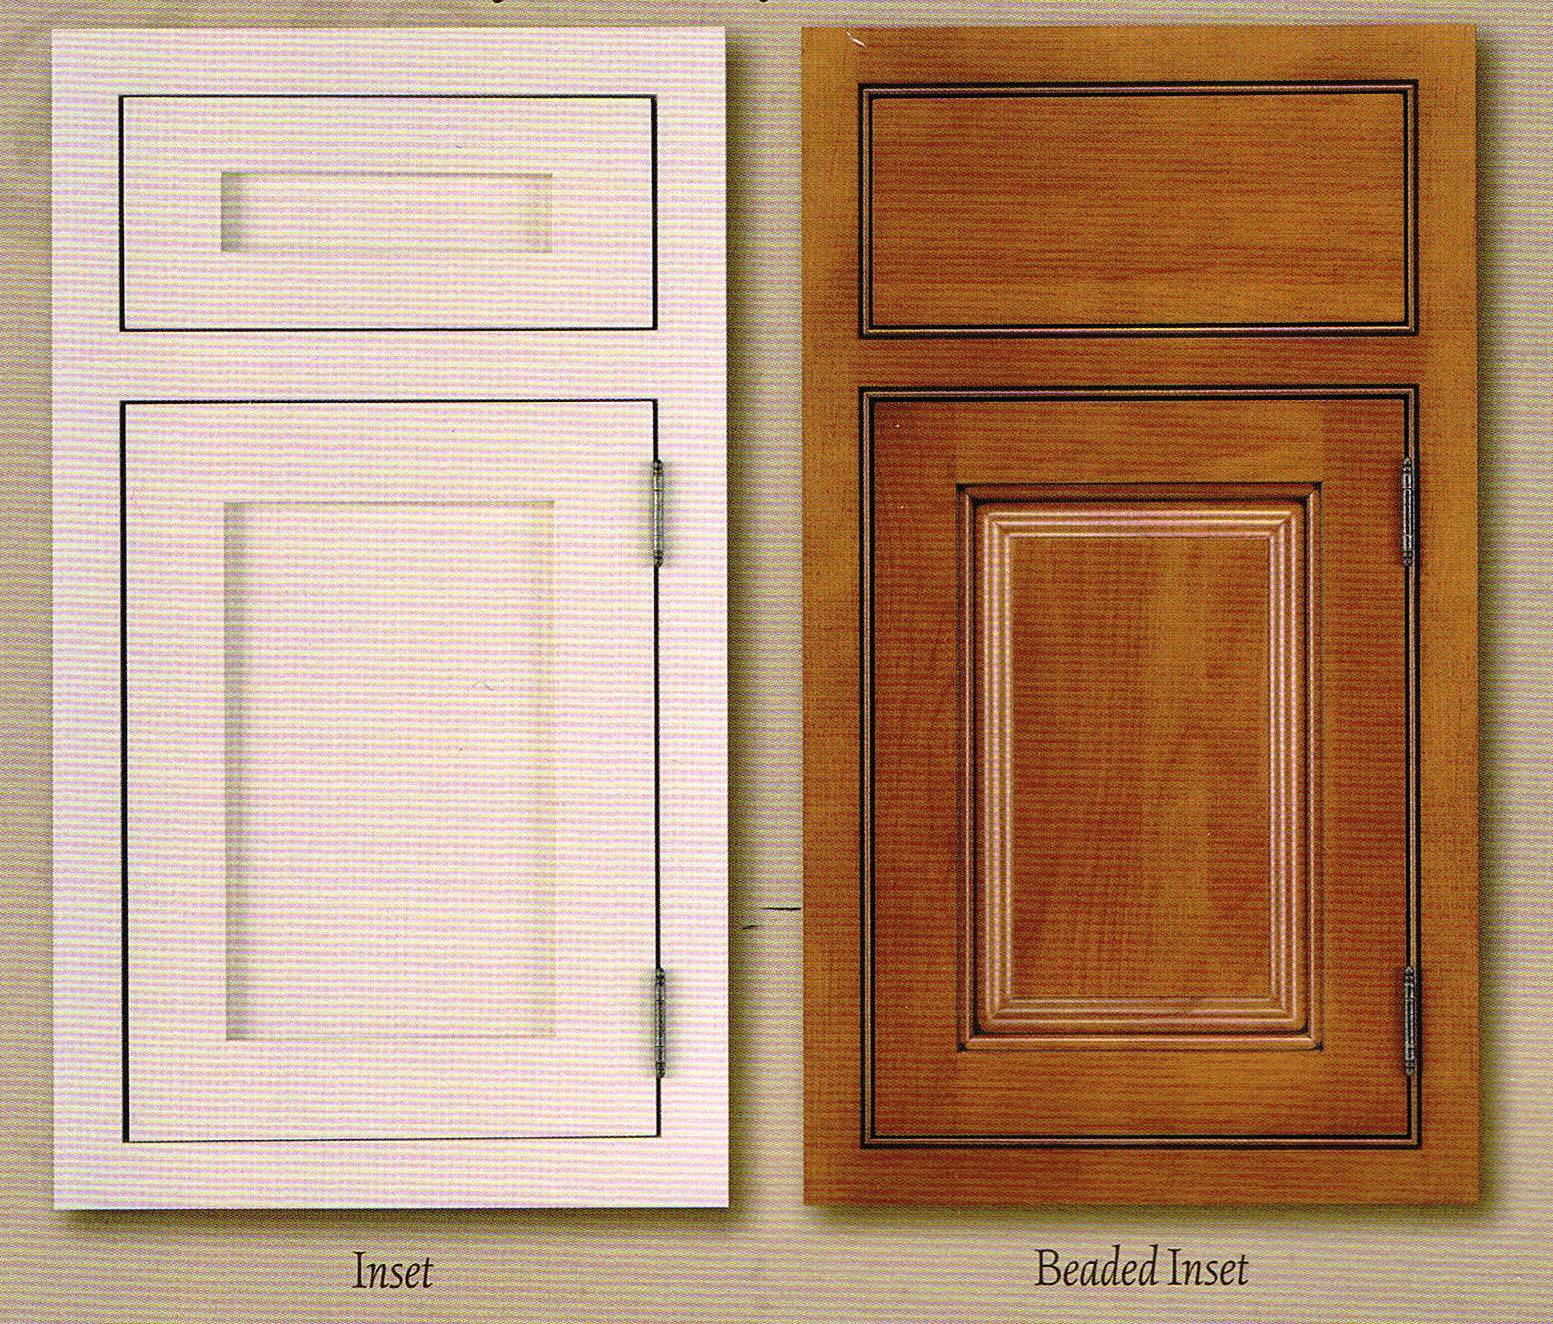 kitchen cabinets kitchen cabinet door styles How to Select Kitchen Cabinets Cabinetry Overlay Styles